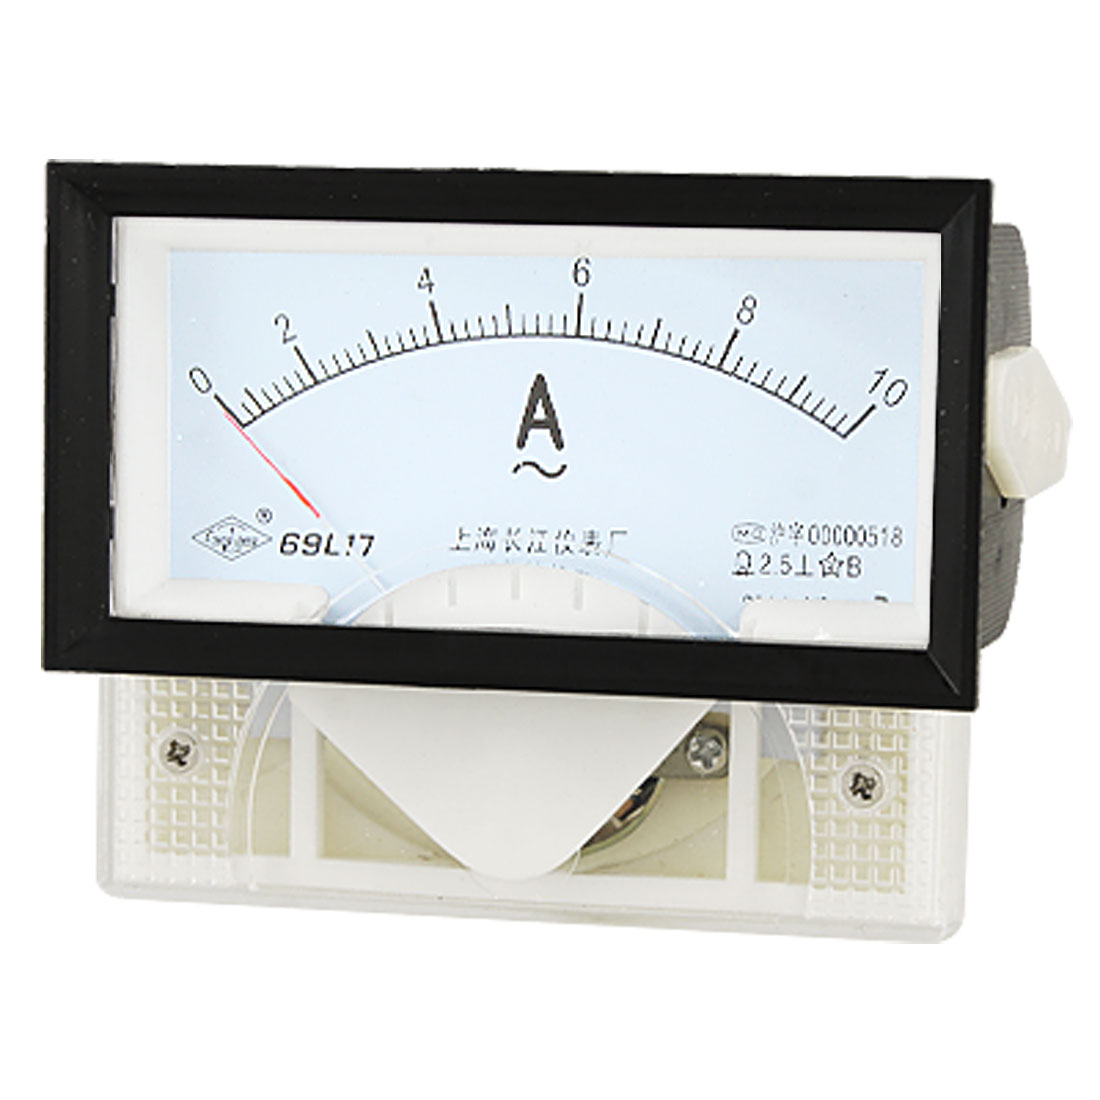 AC 10A Current Measuring Gauge Rectangle Panel Analog Amperemeter